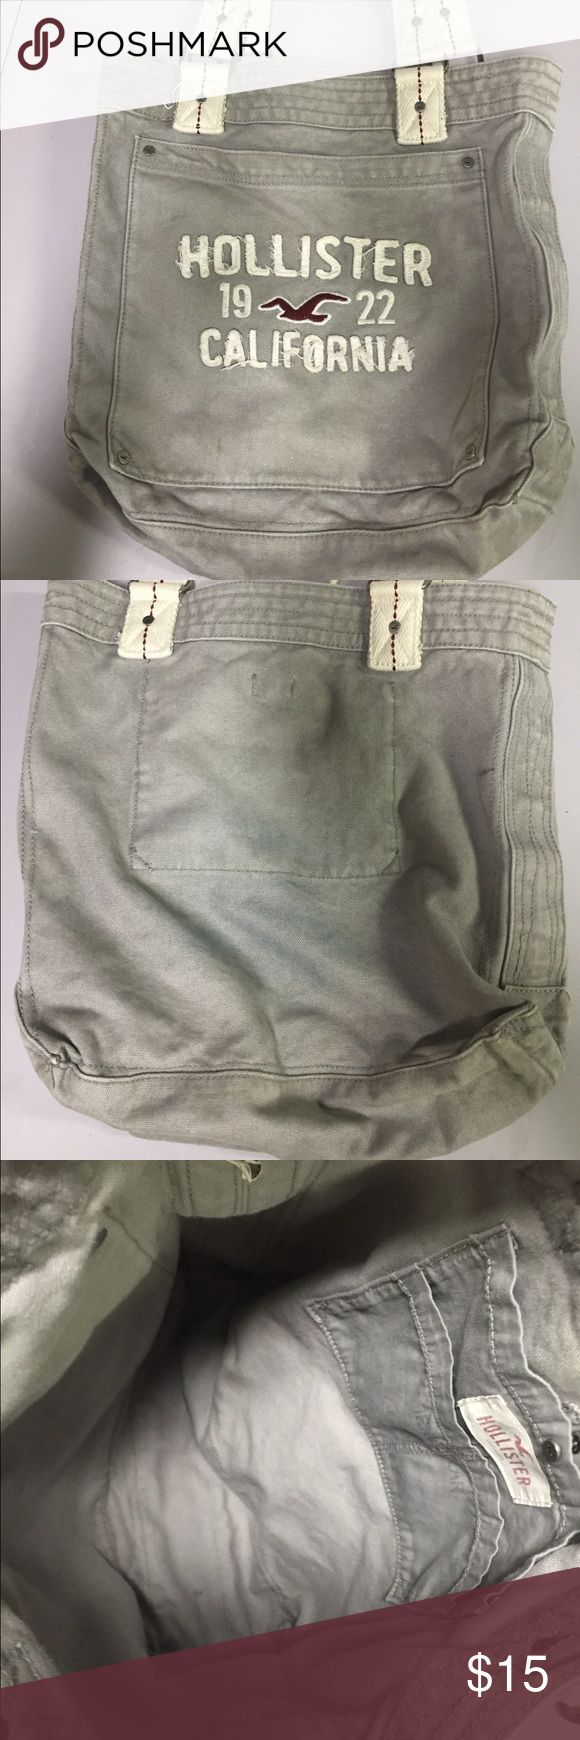 Hollister Tote Bag Purse Good used condition Hollister Bags Totes